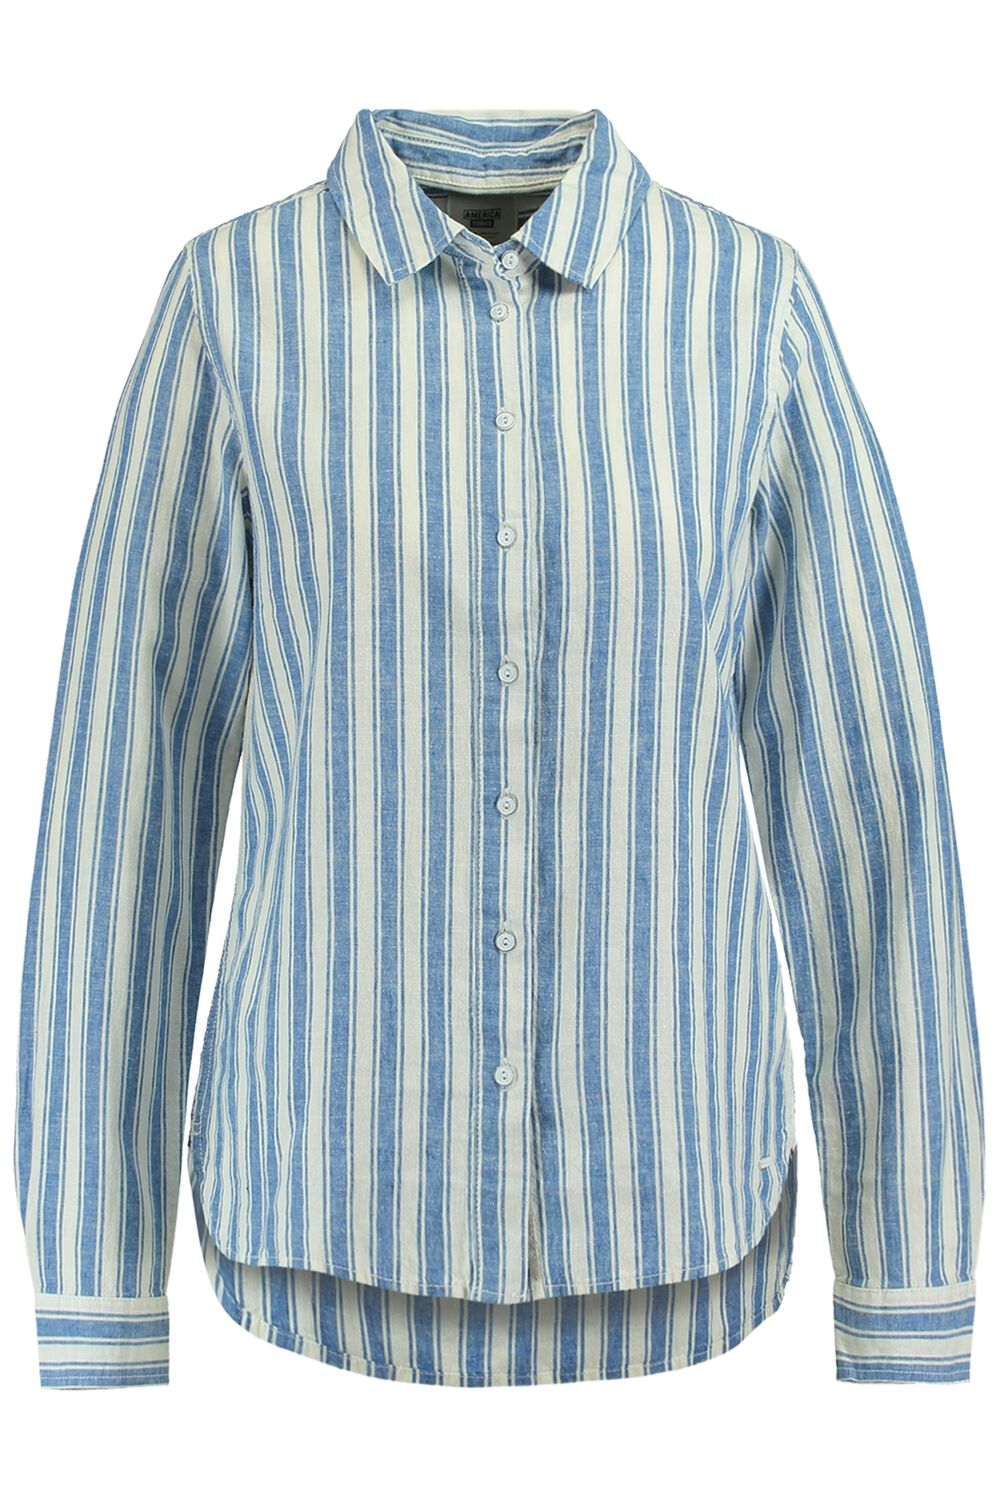 America Today Dames Blouse Britney Blauw